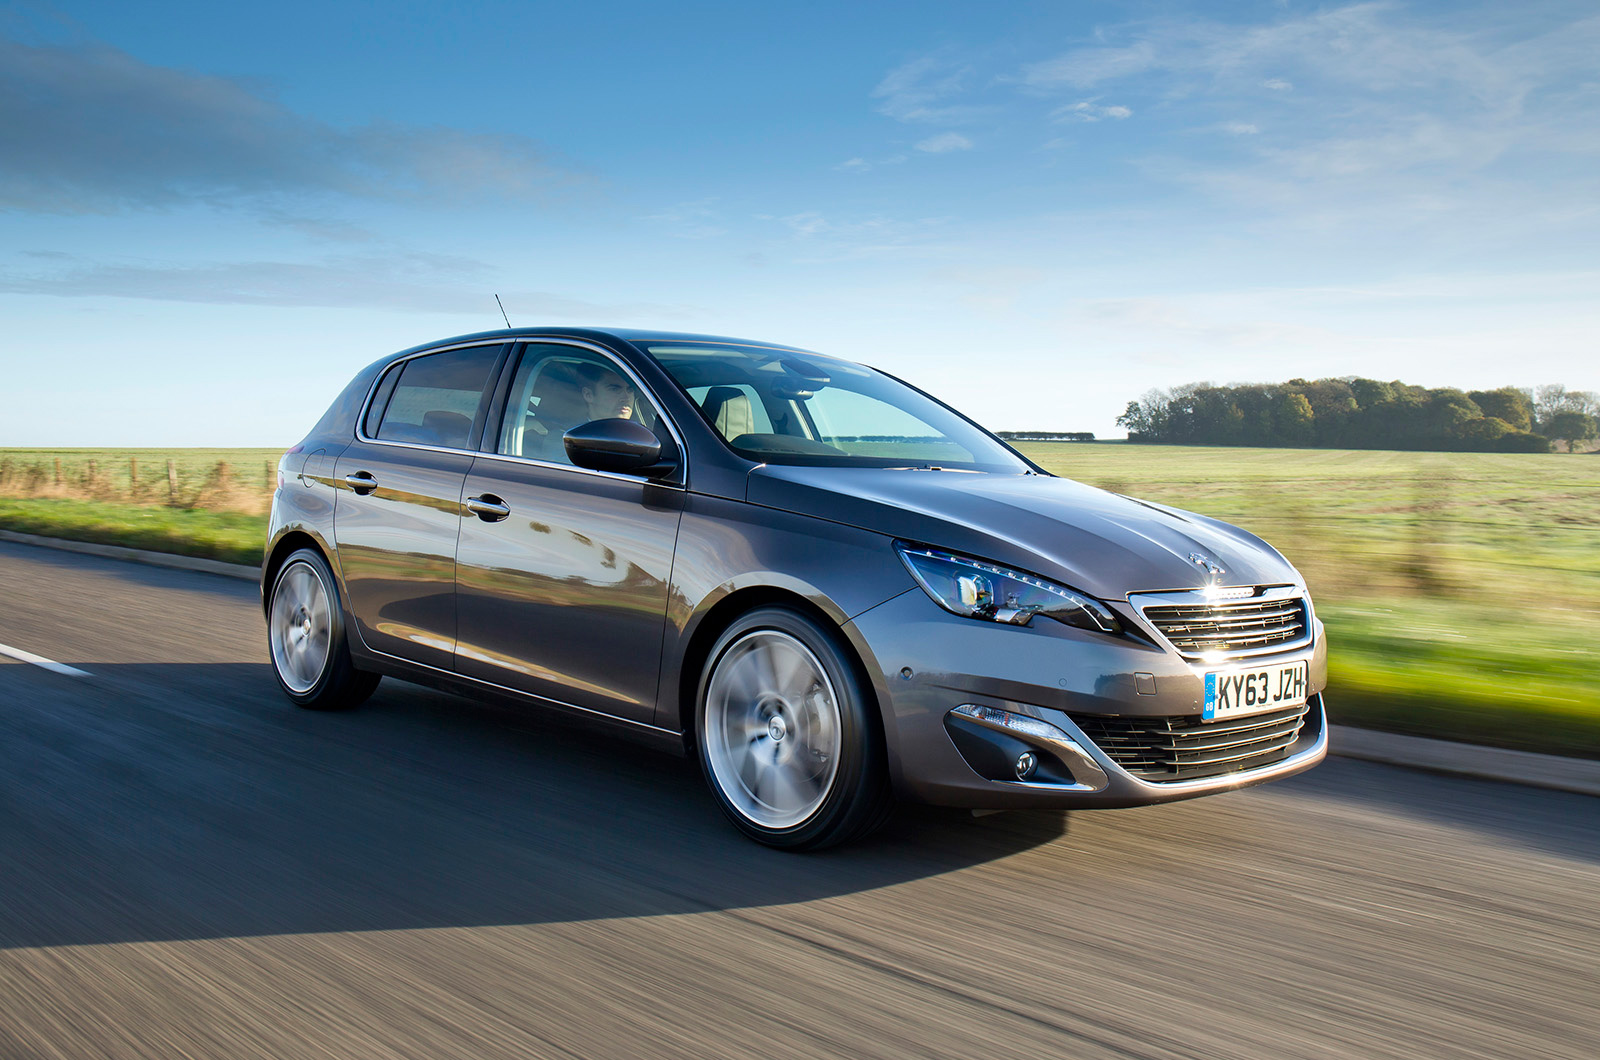 peugeot 308 feline 1.6 thp 156 first drive review | autocar